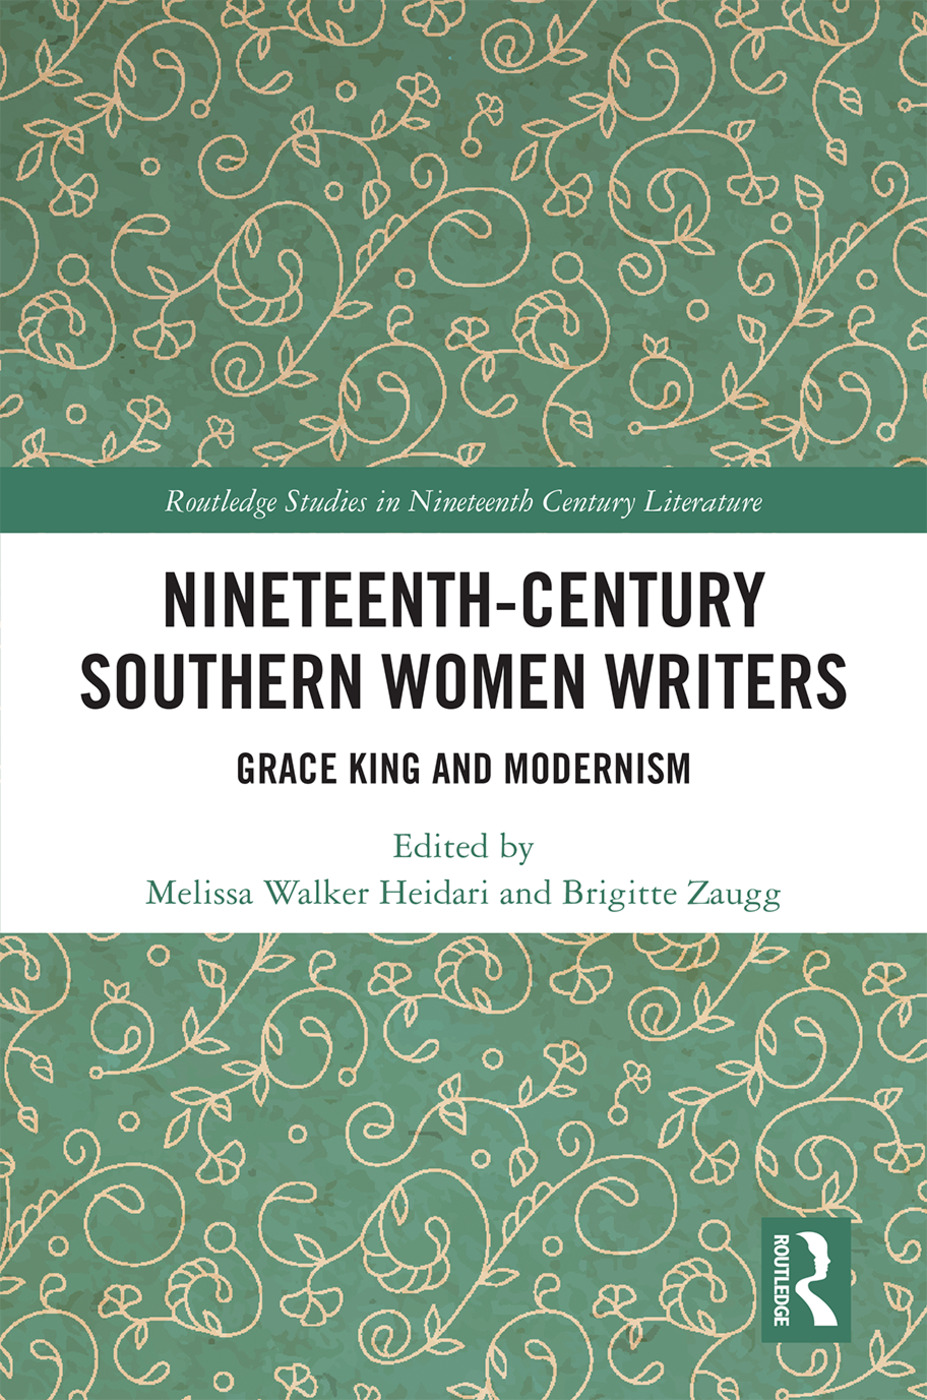 Nineteenth-Century Southern Women Writers: Grace King and Modernism, 1st Edition (Hardback) book cover